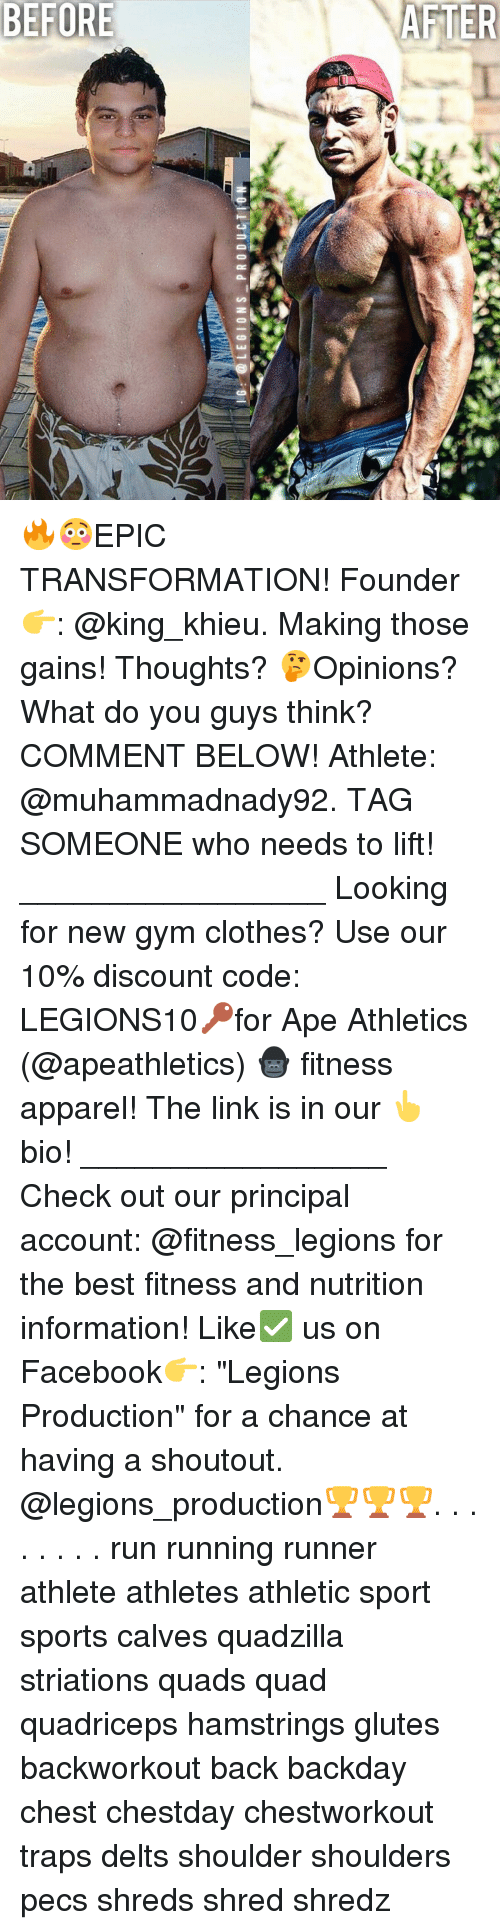 "cloths: LEGIONS PRODUCTION 🔥😳EPIC TRANSFORMATION! Founder 👉: @king_khieu. Making those gains! Thoughts? 🤔Opinions? What do you guys think? COMMENT BELOW! Athlete: @muhammadnady92. TAG SOMEONE who needs to lift! _________________ Looking for new gym clothes? Use our 10% discount code: LEGIONS10🔑for Ape Athletics (@apeathletics) 🦍 fitness apparel! The link is in our 👆 bio! _________________ Check out our principal account: @fitness_legions for the best fitness and nutrition information! Like✅ us on Facebook👉: ""Legions Production"" for a chance at having a shoutout. @legions_production🏆🏆🏆. . . . . . . . run running runner athlete athletes athletic sport sports calves quadzilla striations quads quad quadriceps hamstrings glutes backworkout back backday chest chestday chestworkout traps delts shoulder shoulders pecs shreds shred shredz"